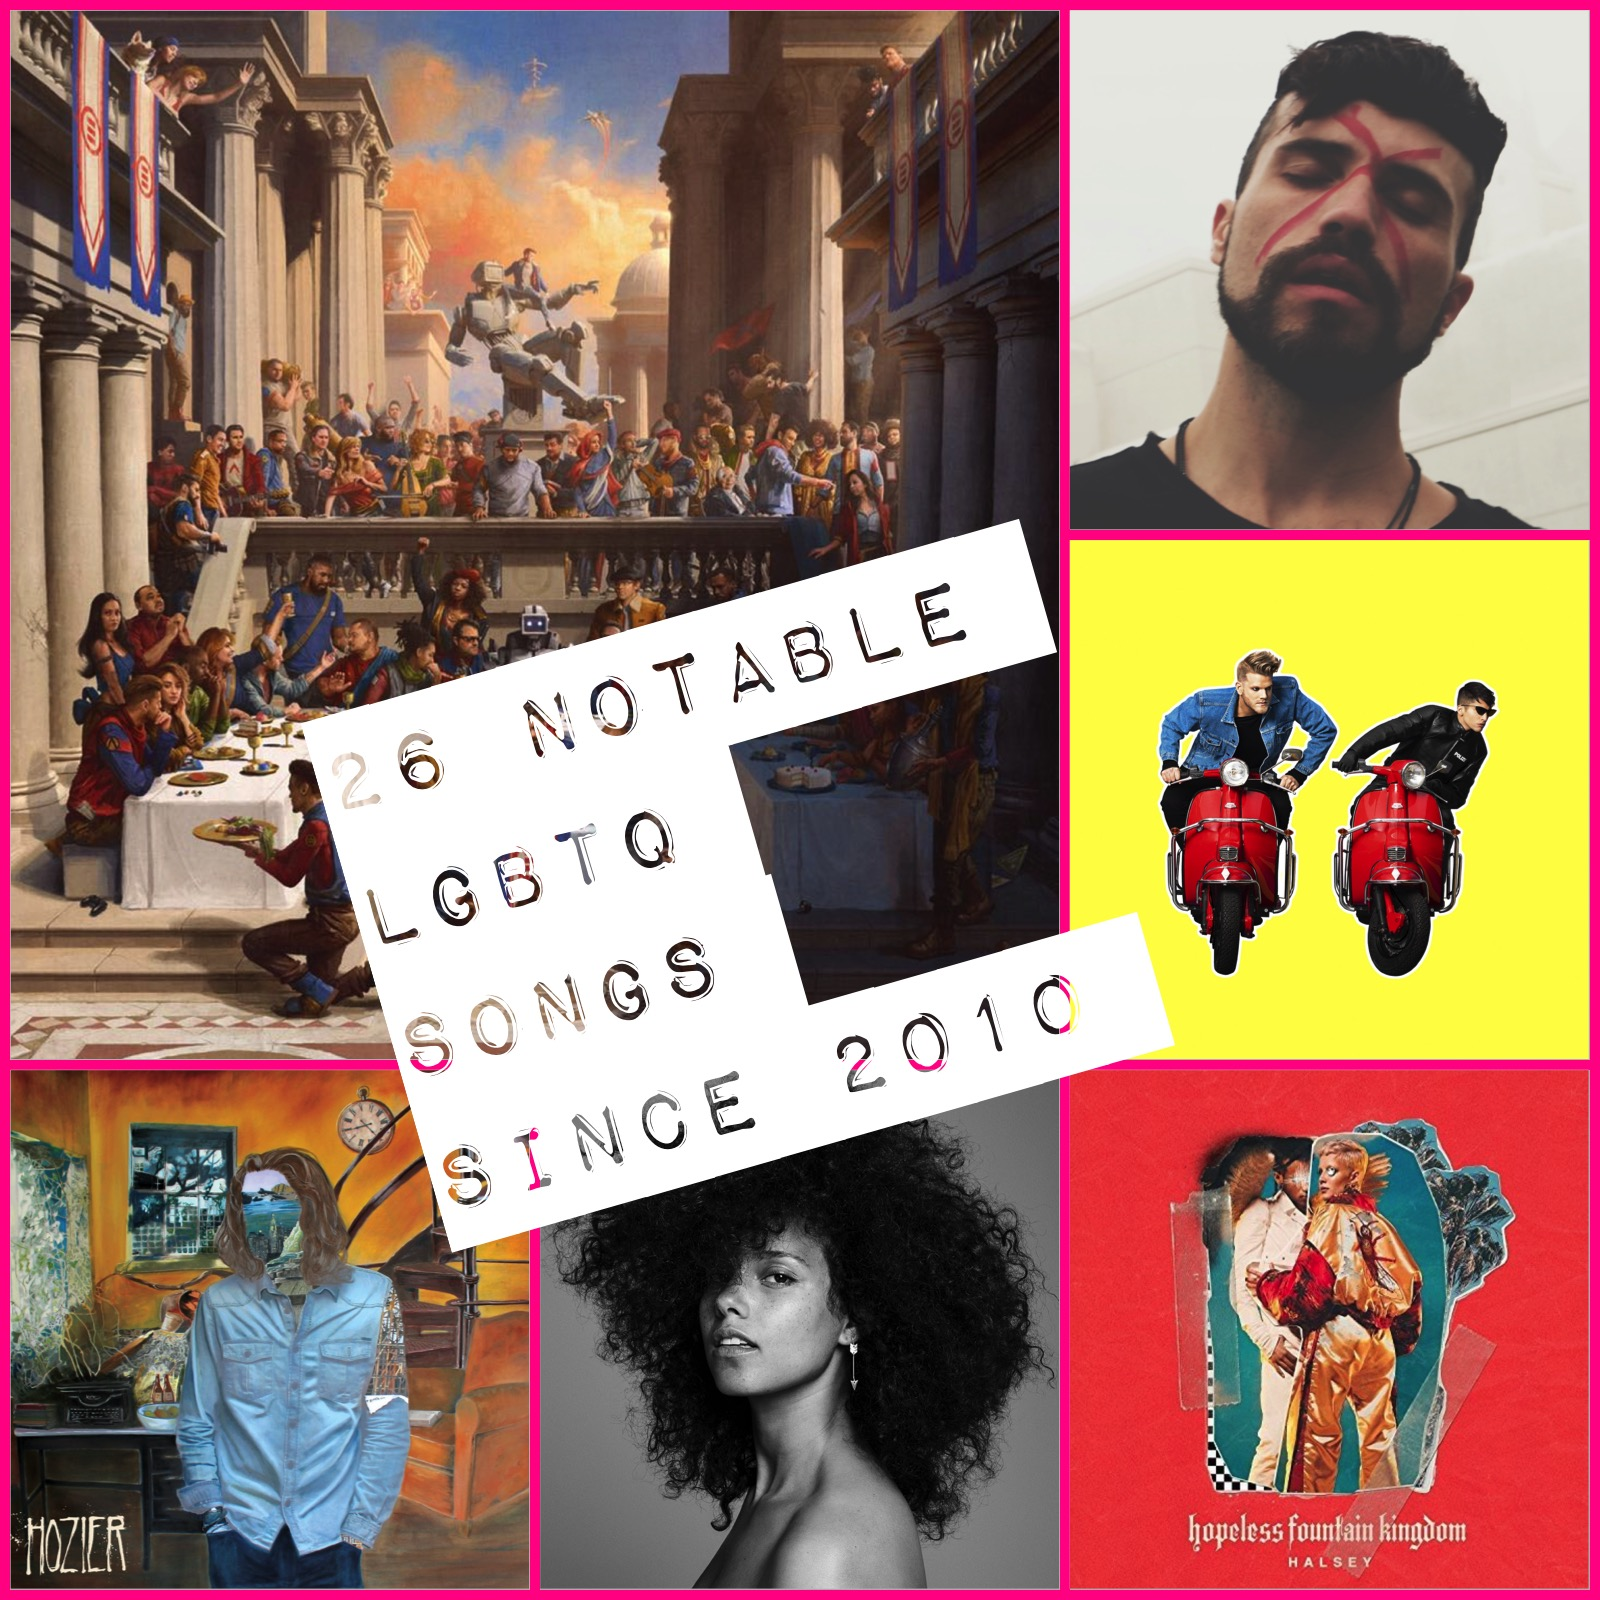 26 Notable LGBTQ Songs Since 2010 | Playlist